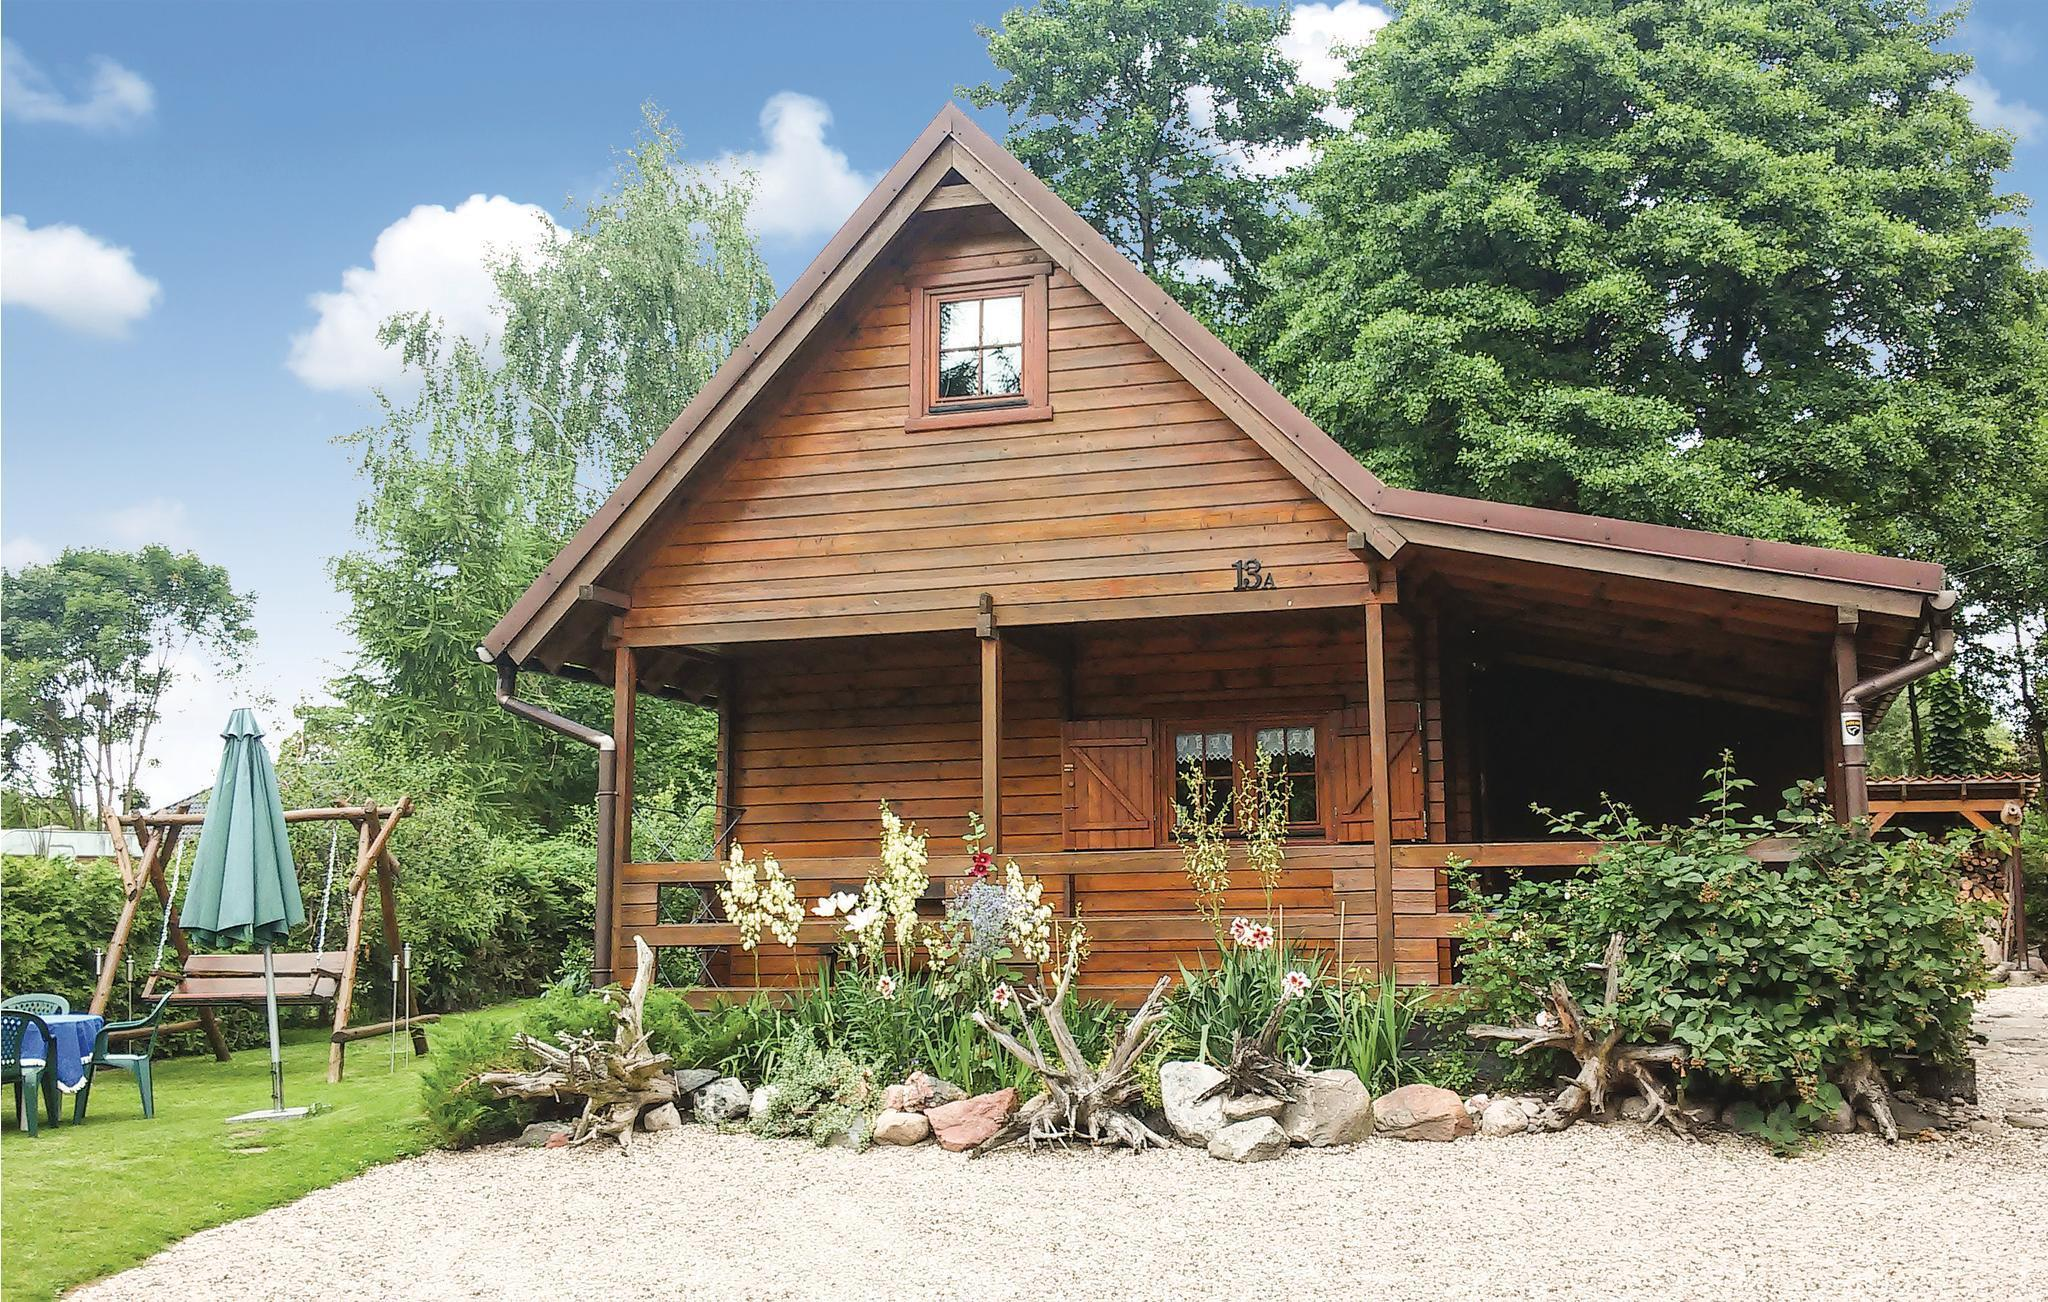 Ferienhaus Aus Holz Holiday Home Apartment 4 Persons Wieprz Wieprz 14 230 Zalewo